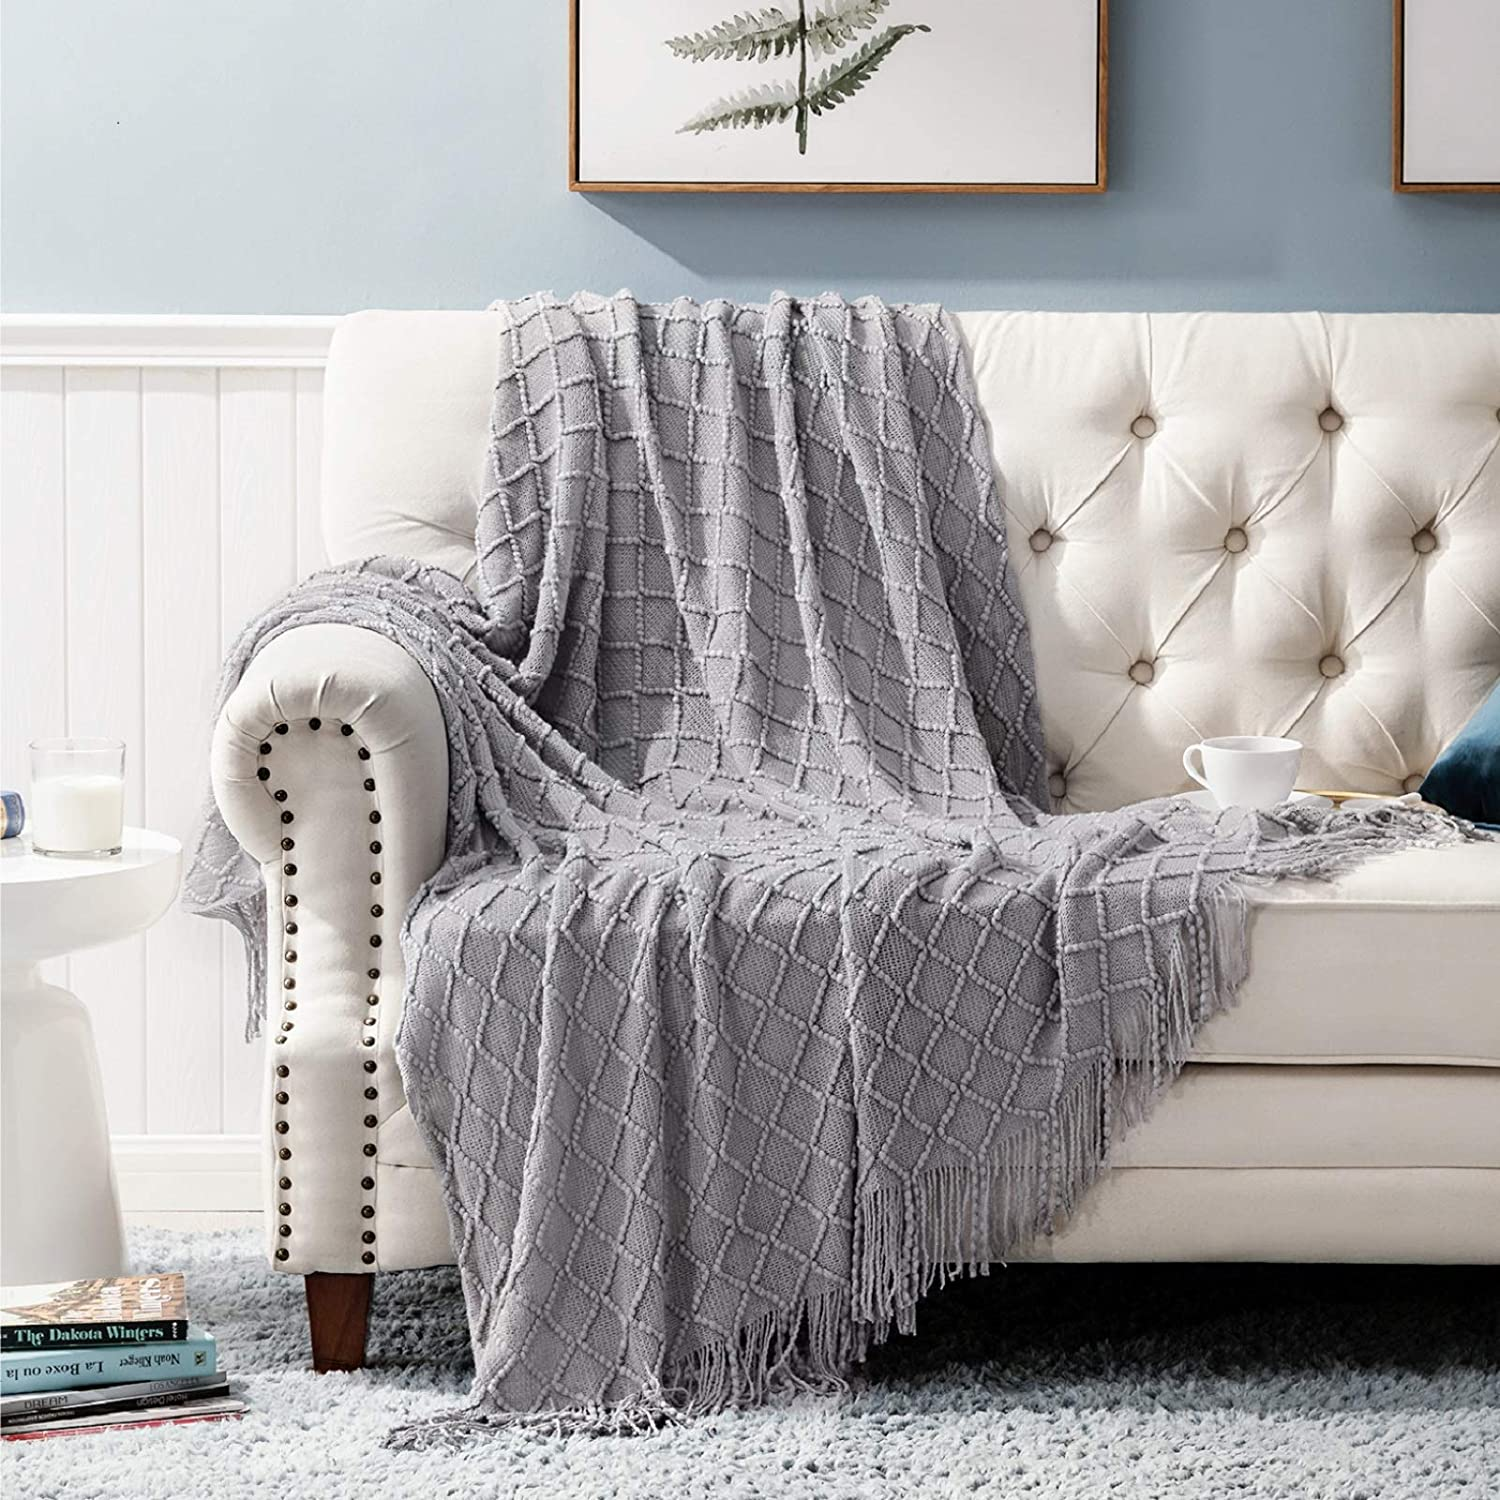 Amazon.com: Bedsure Throw Blanket For Couch, Knit Woven Blanket, 50×60 Inch - Cozy Lightweight Decorative Blanket With Tassels For Couch, Bed, Sofa, Travel - All Seasons Suitable For Women, Men And Kids (